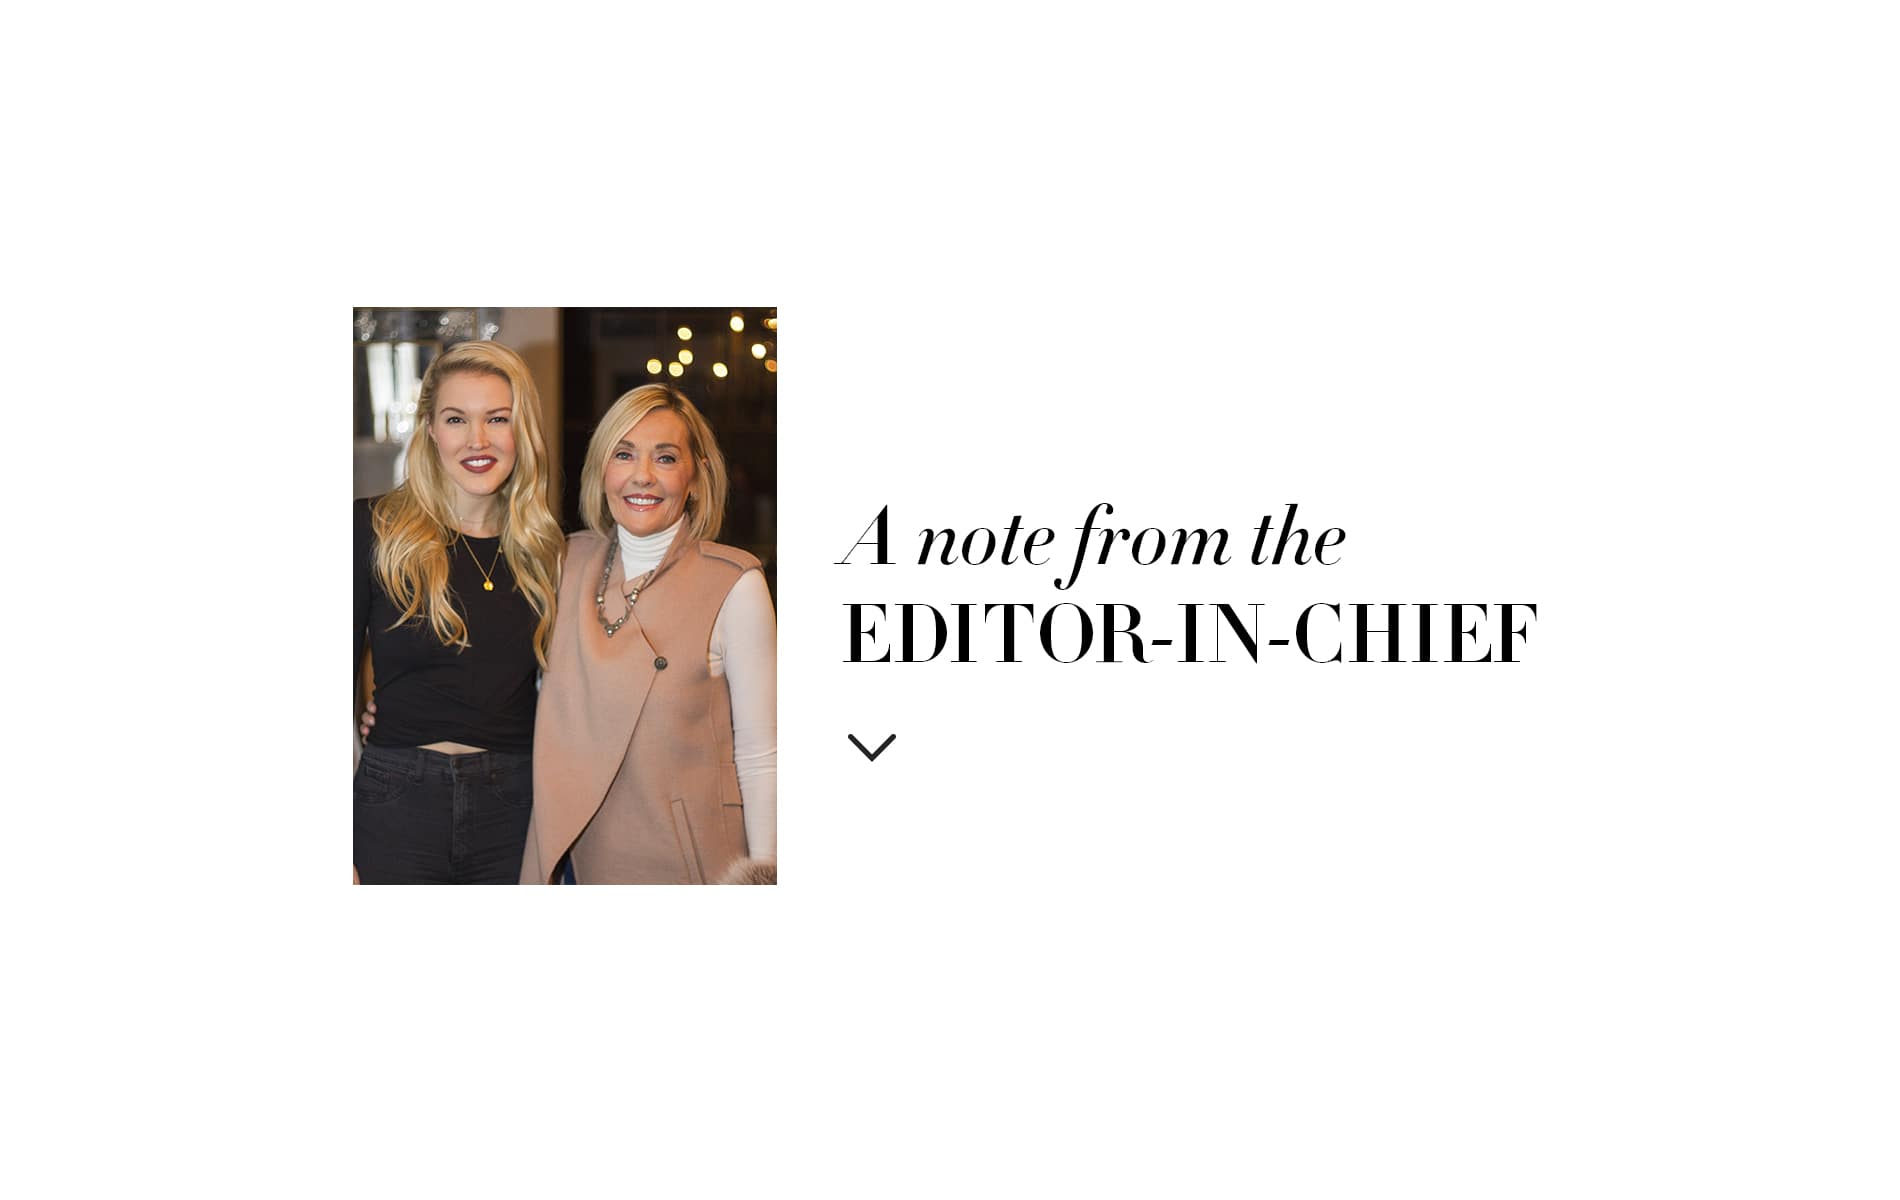 Editor in Chief Note by Lisa Burwell, March 2018, The Entertainers issue.